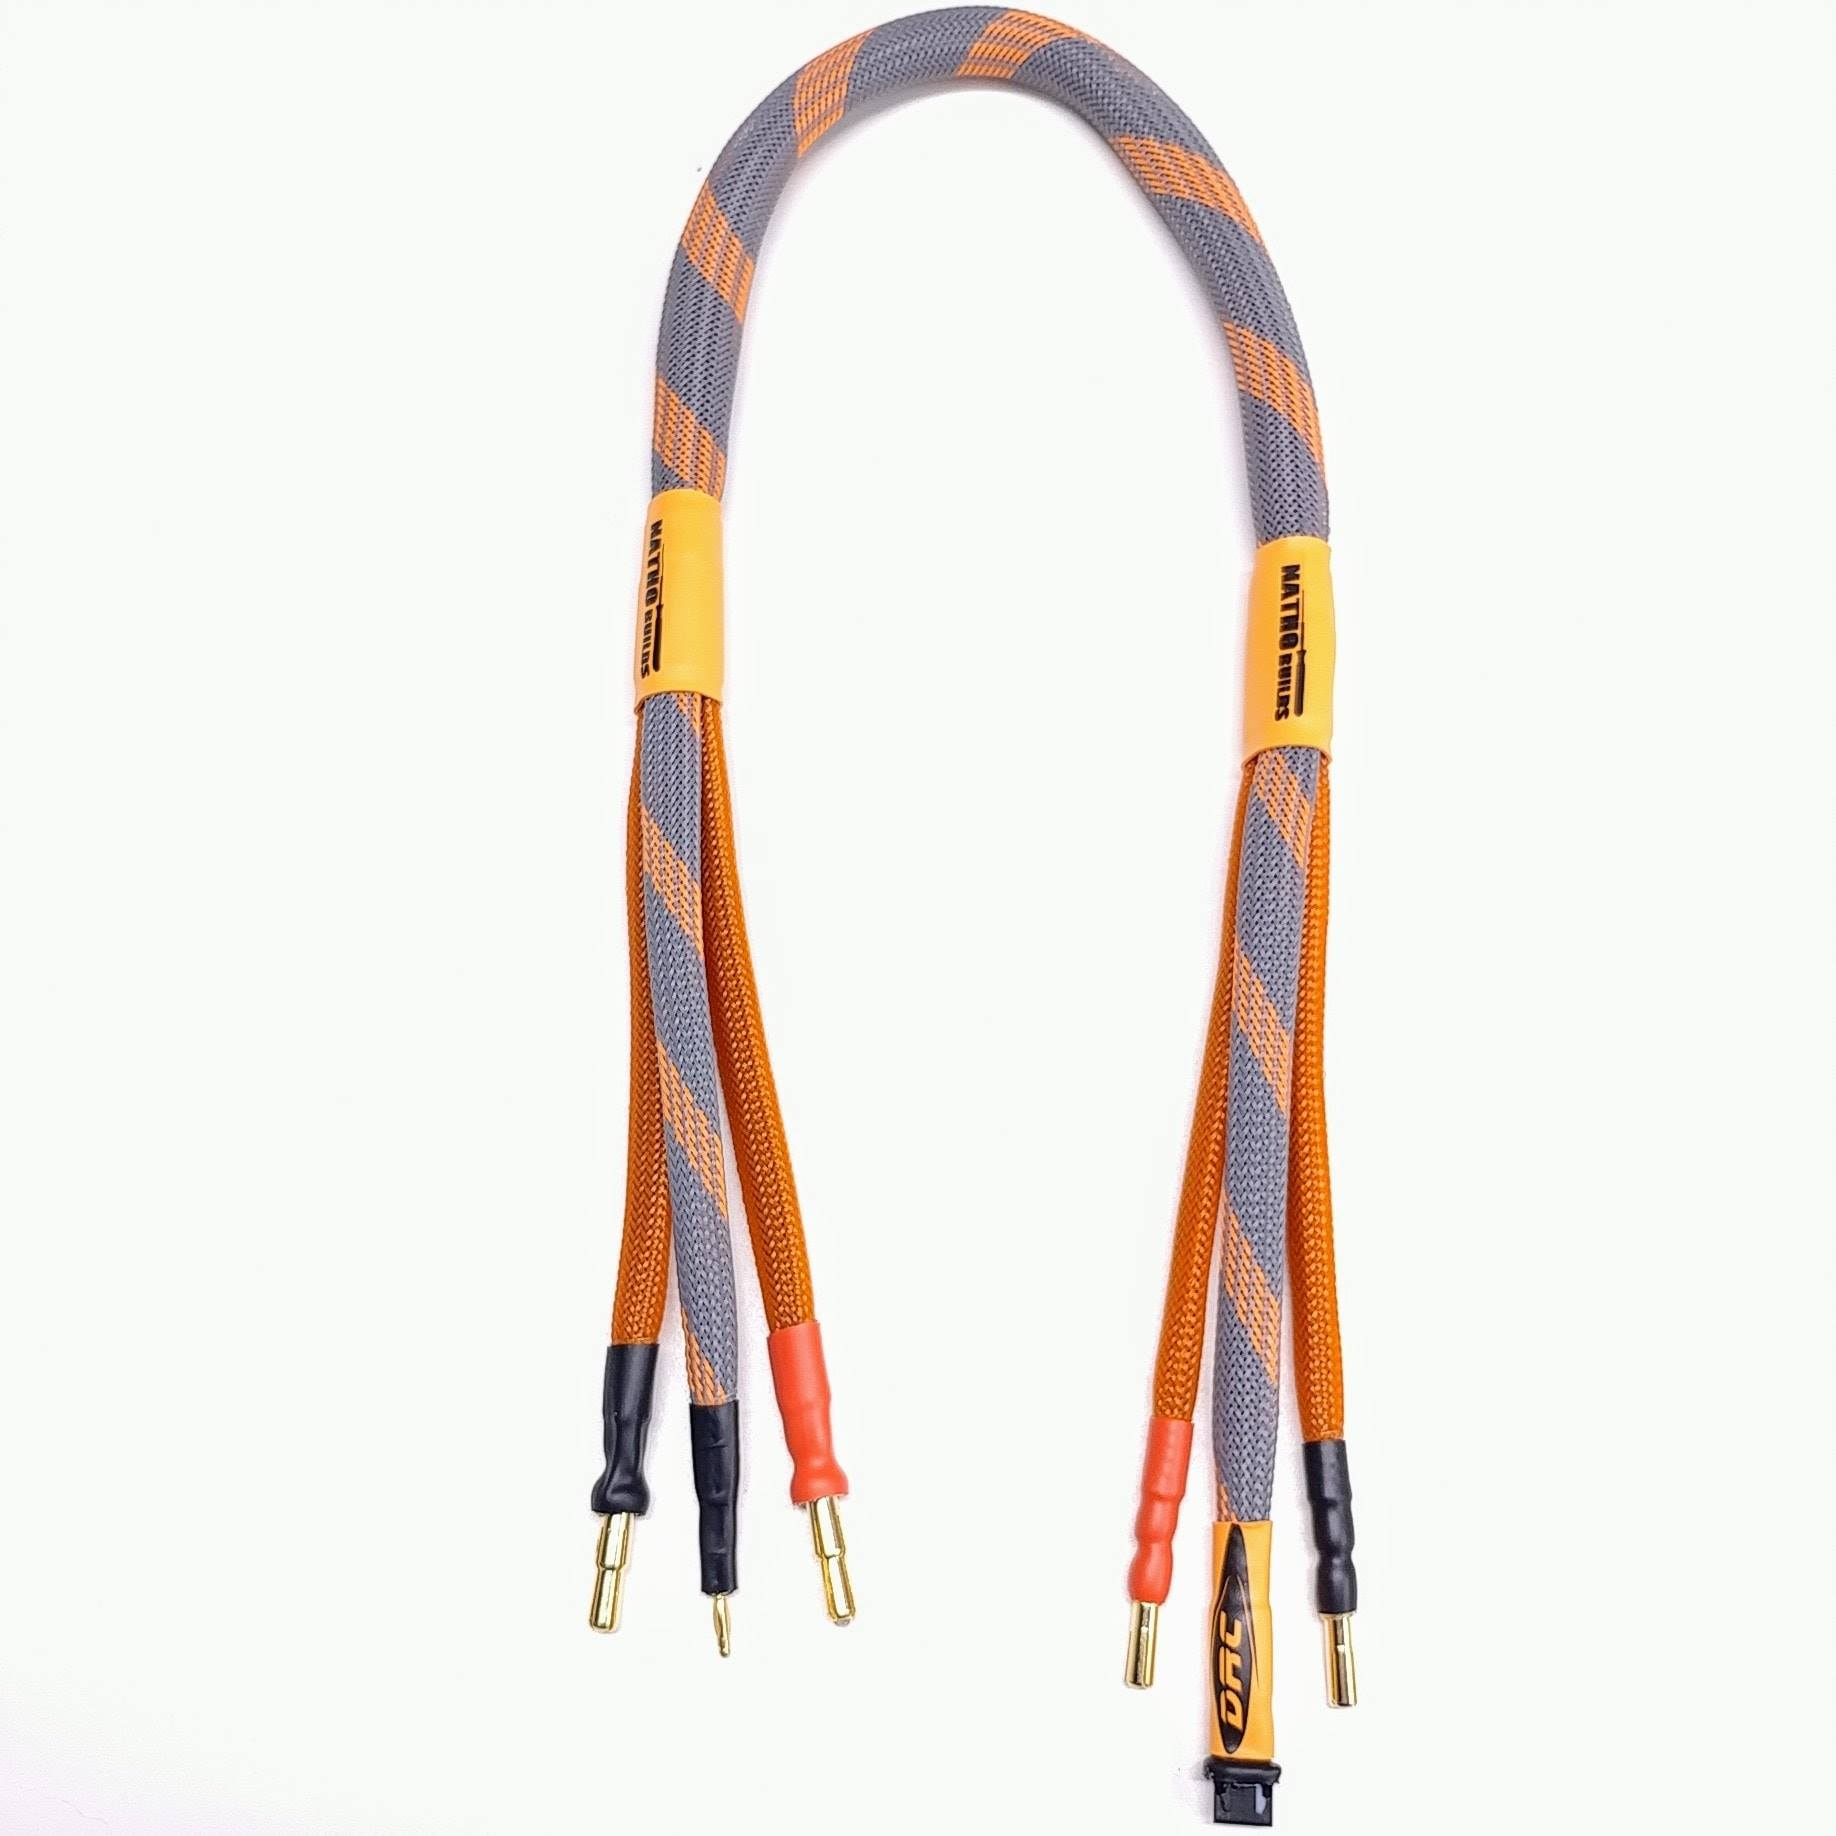 2020 Leveled Up Balance Charge Lead for 2s lipo 4/5mm bullet (Orange & Twist)